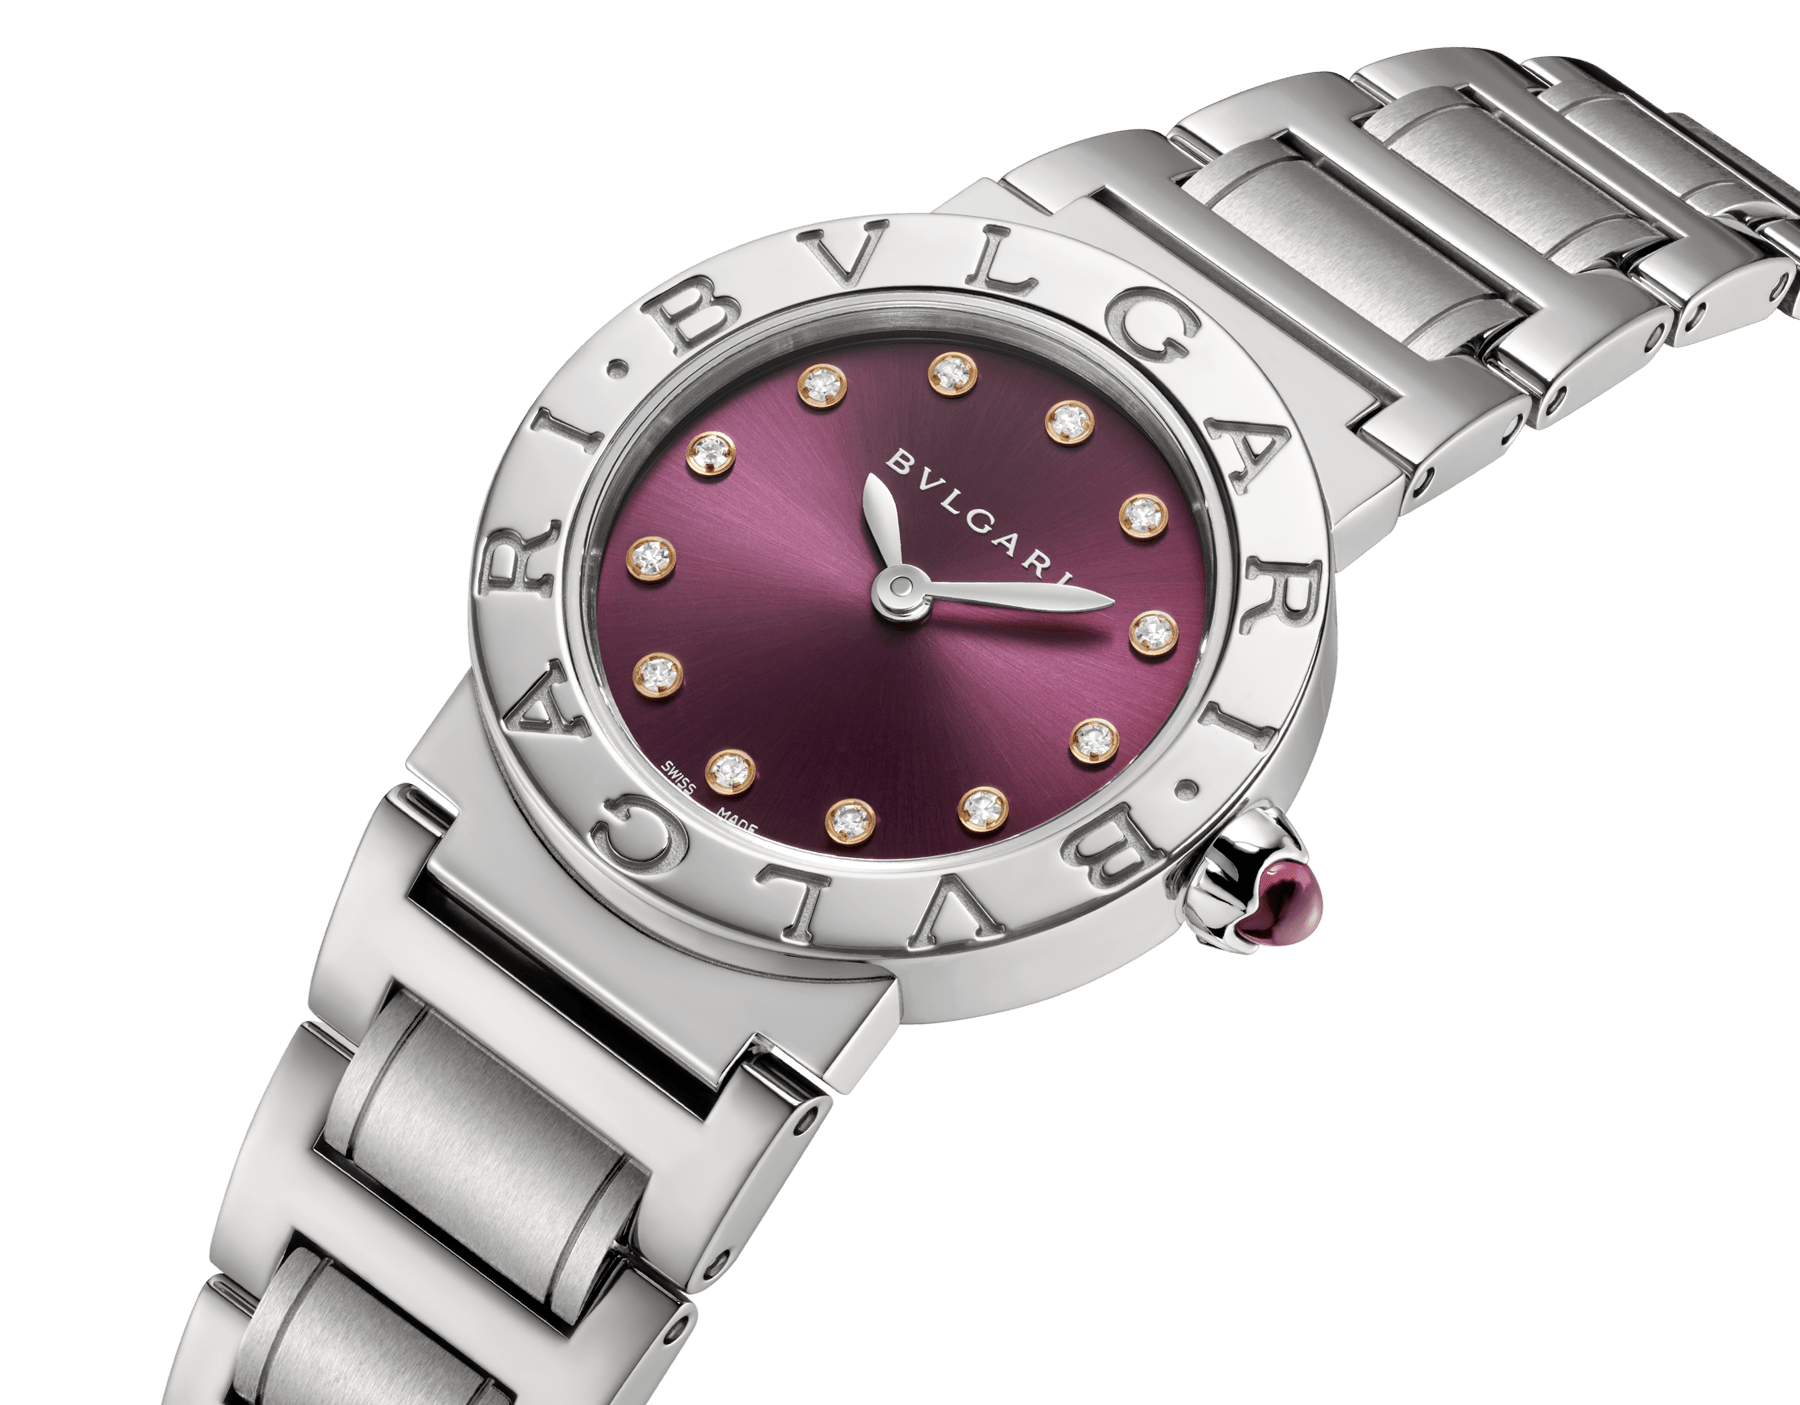 BVLGARI BVLGARI watch in stainless steel case and bracelet, with purple satiné soleil lacquered dial and diamond indexes 102606 image 2